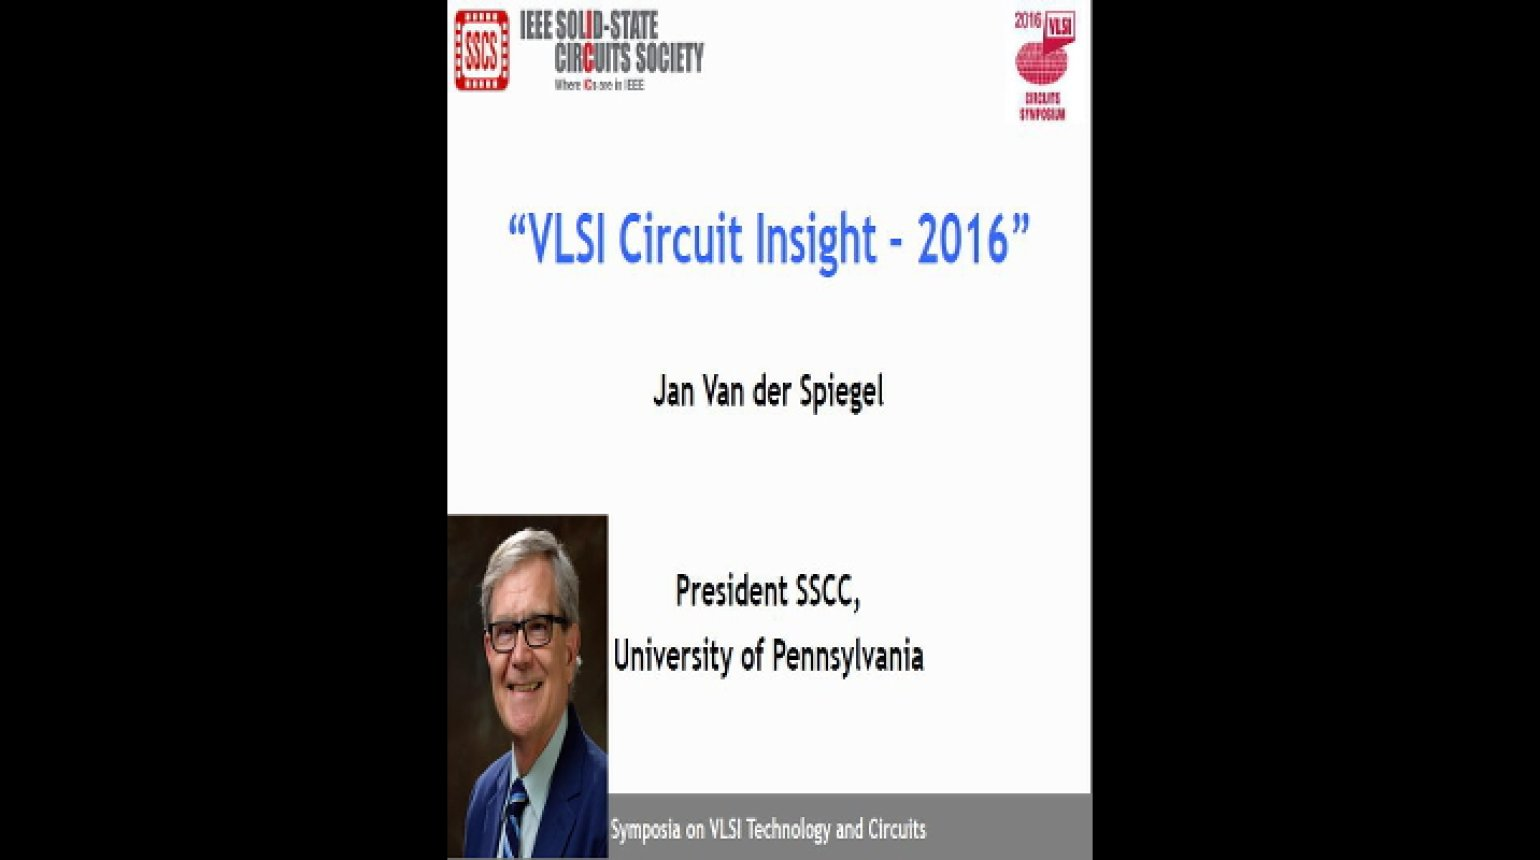 VLSI Circuit Insight 2016 Video